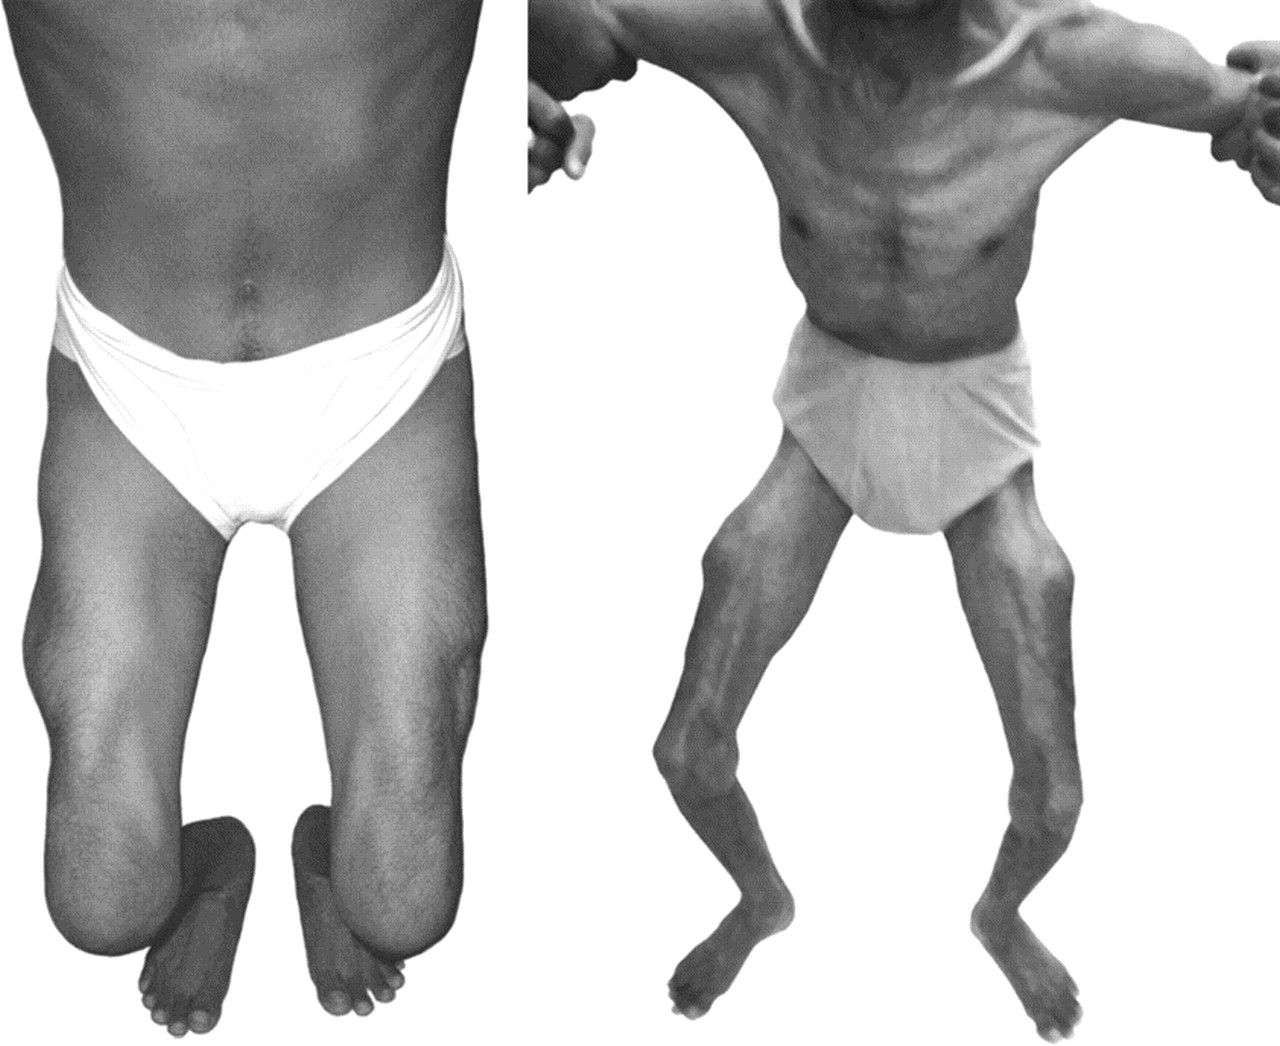 The man shown has limb girdle muscular dystrophy where his pelvic ...